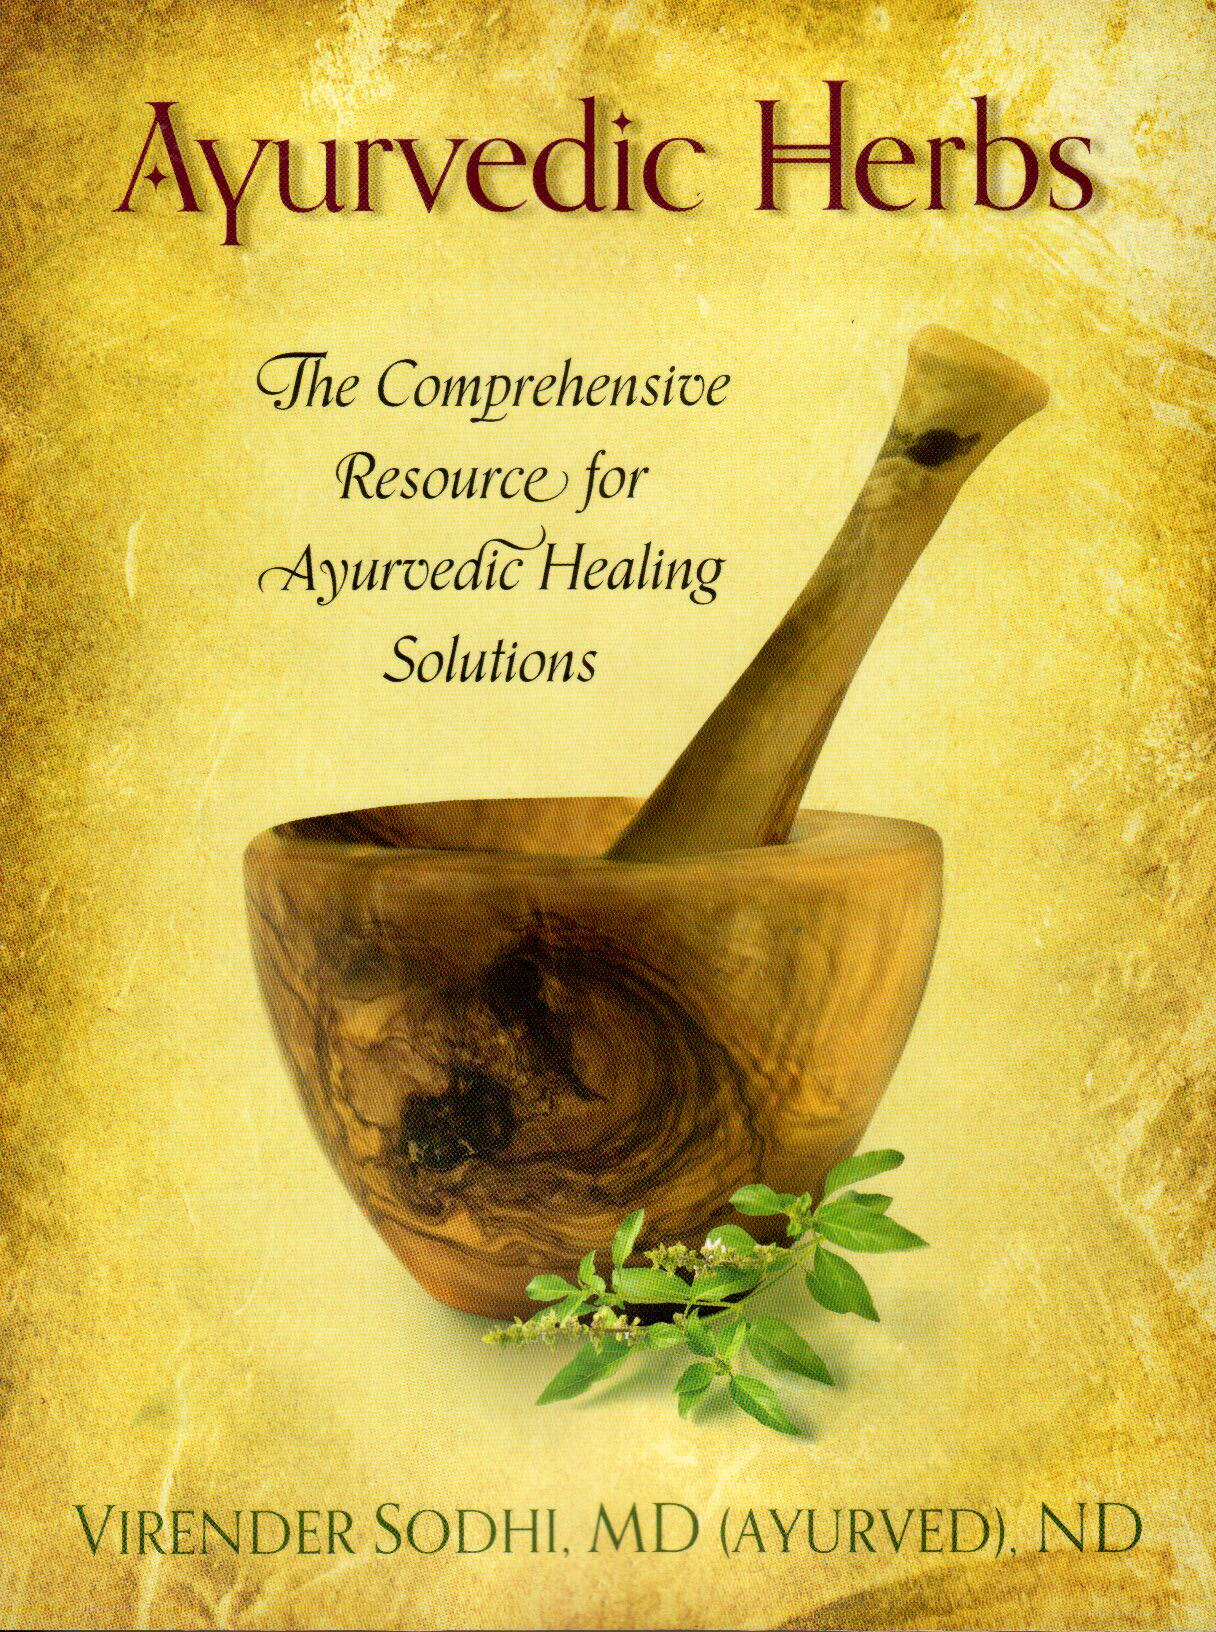 Business Book Cover History : New book 'ayurvedic herbs offers complementary resource